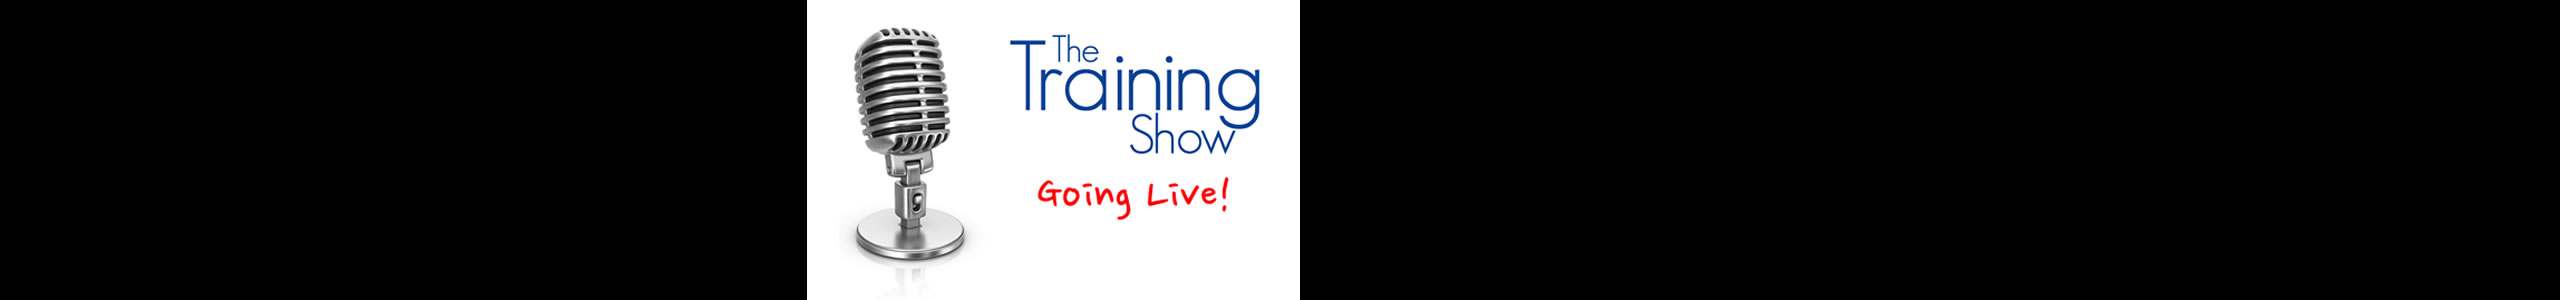 The Training Show Live